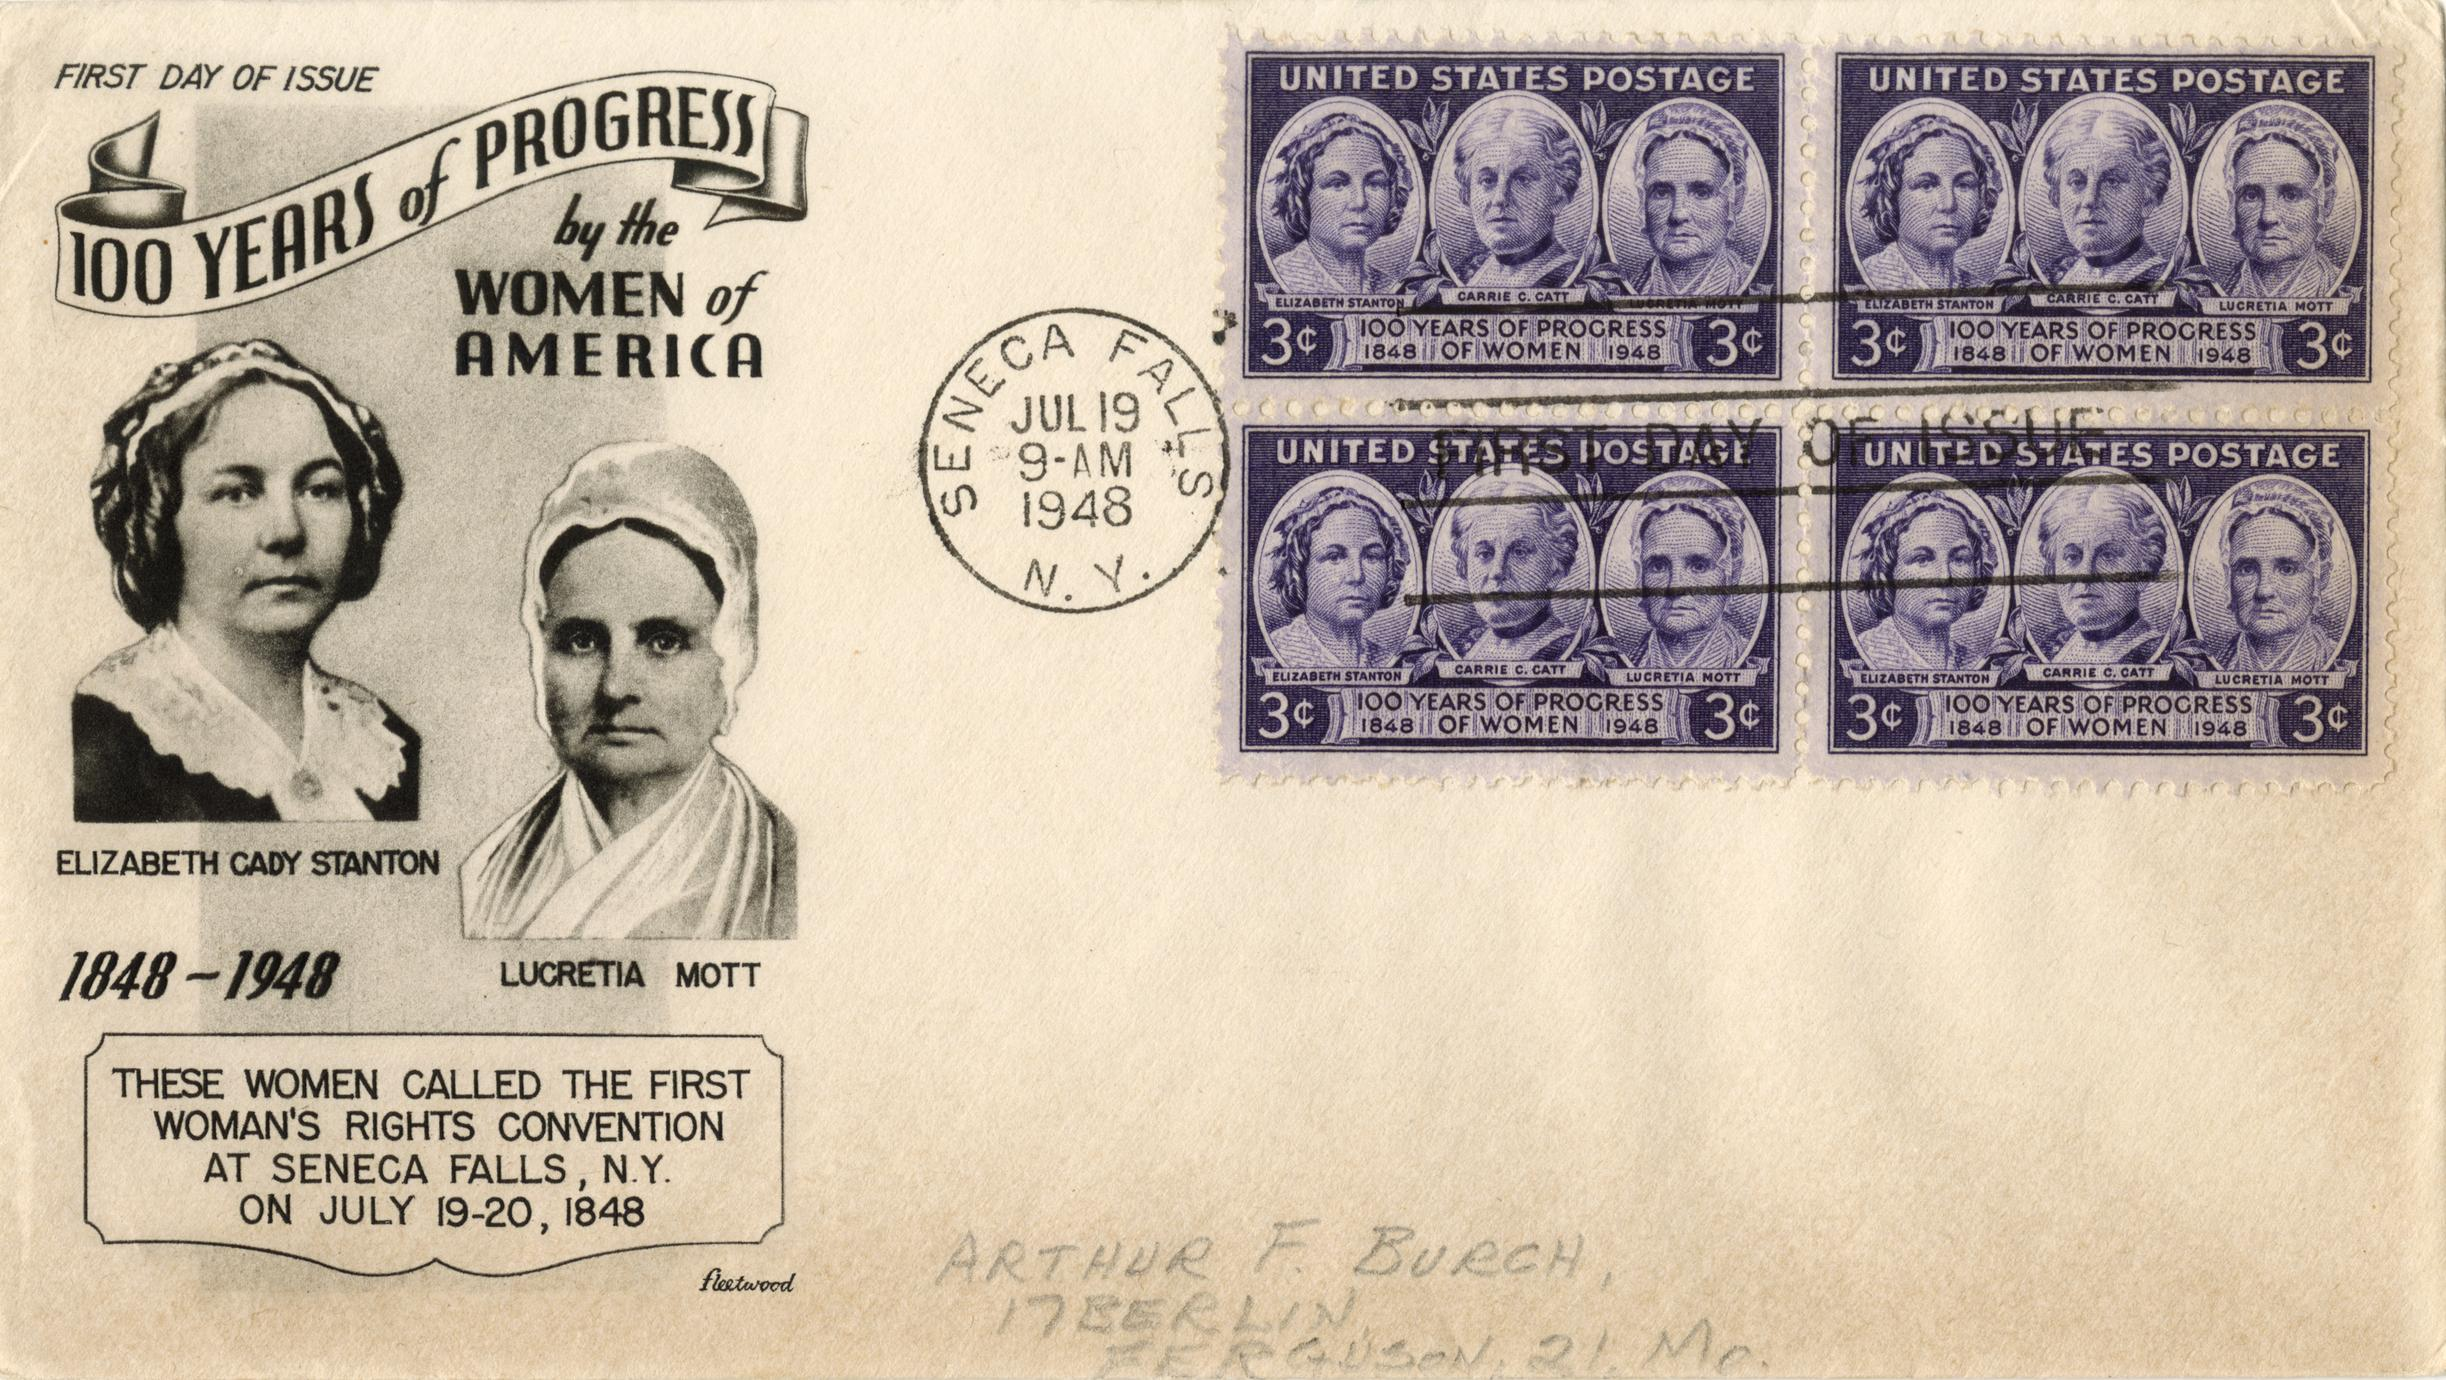 100 years of progress by the women of America envelope